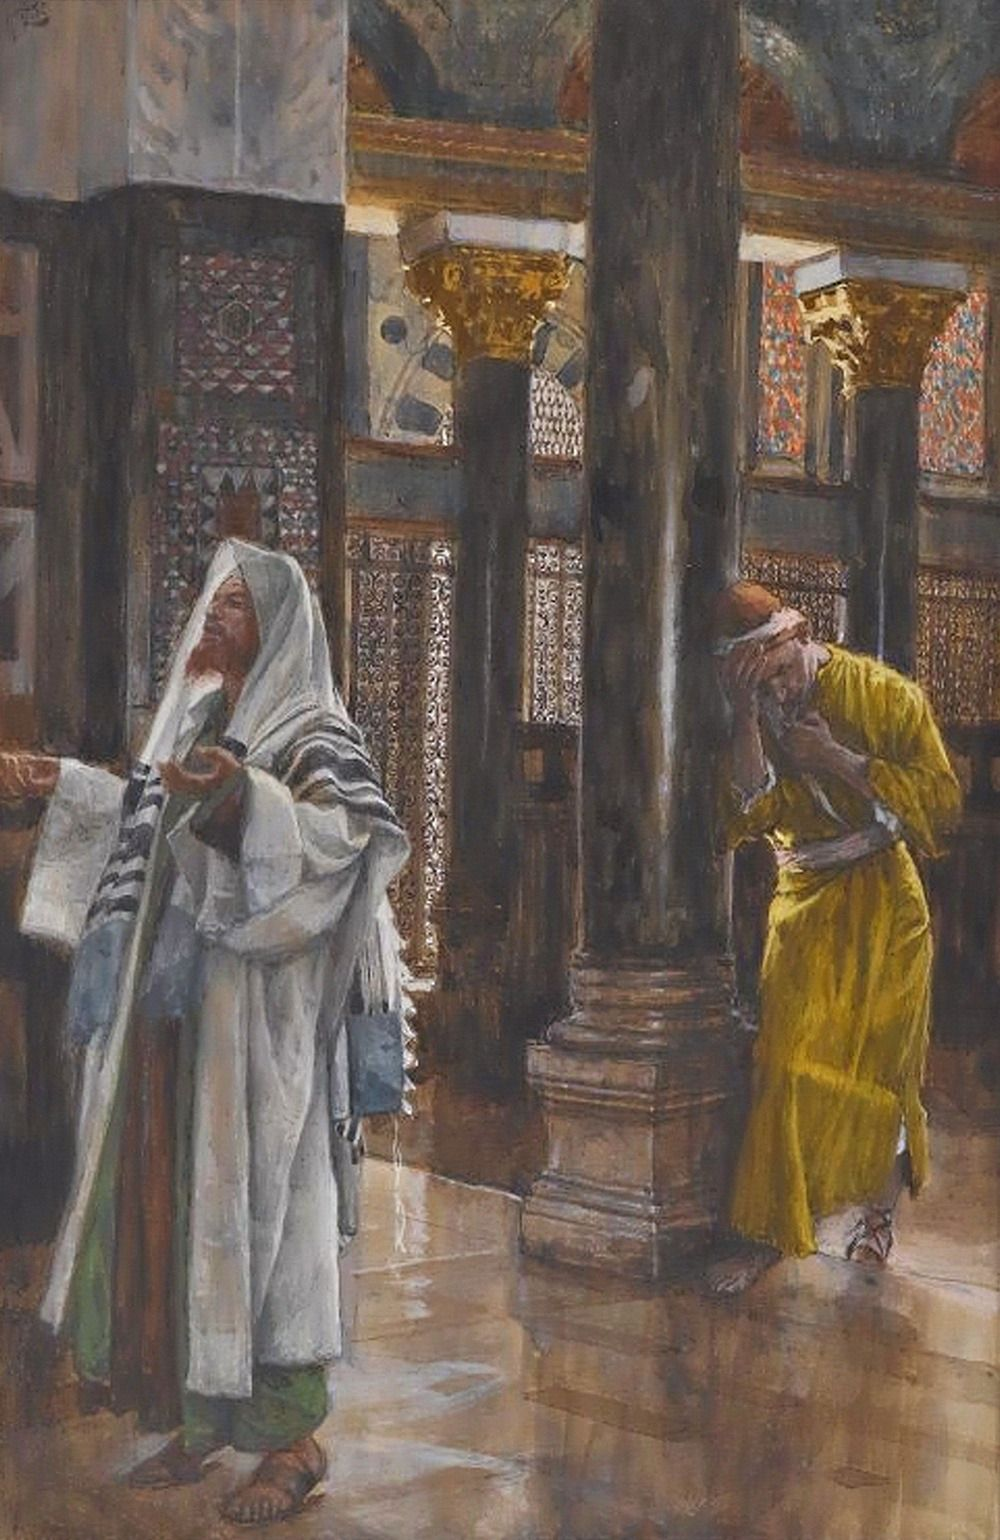 "dramoor: ""Lord Jesus Christ, Son of God, have mercy on me, a sinner. (art: The Pharisee and the Publican, by Tissot, 1894) """